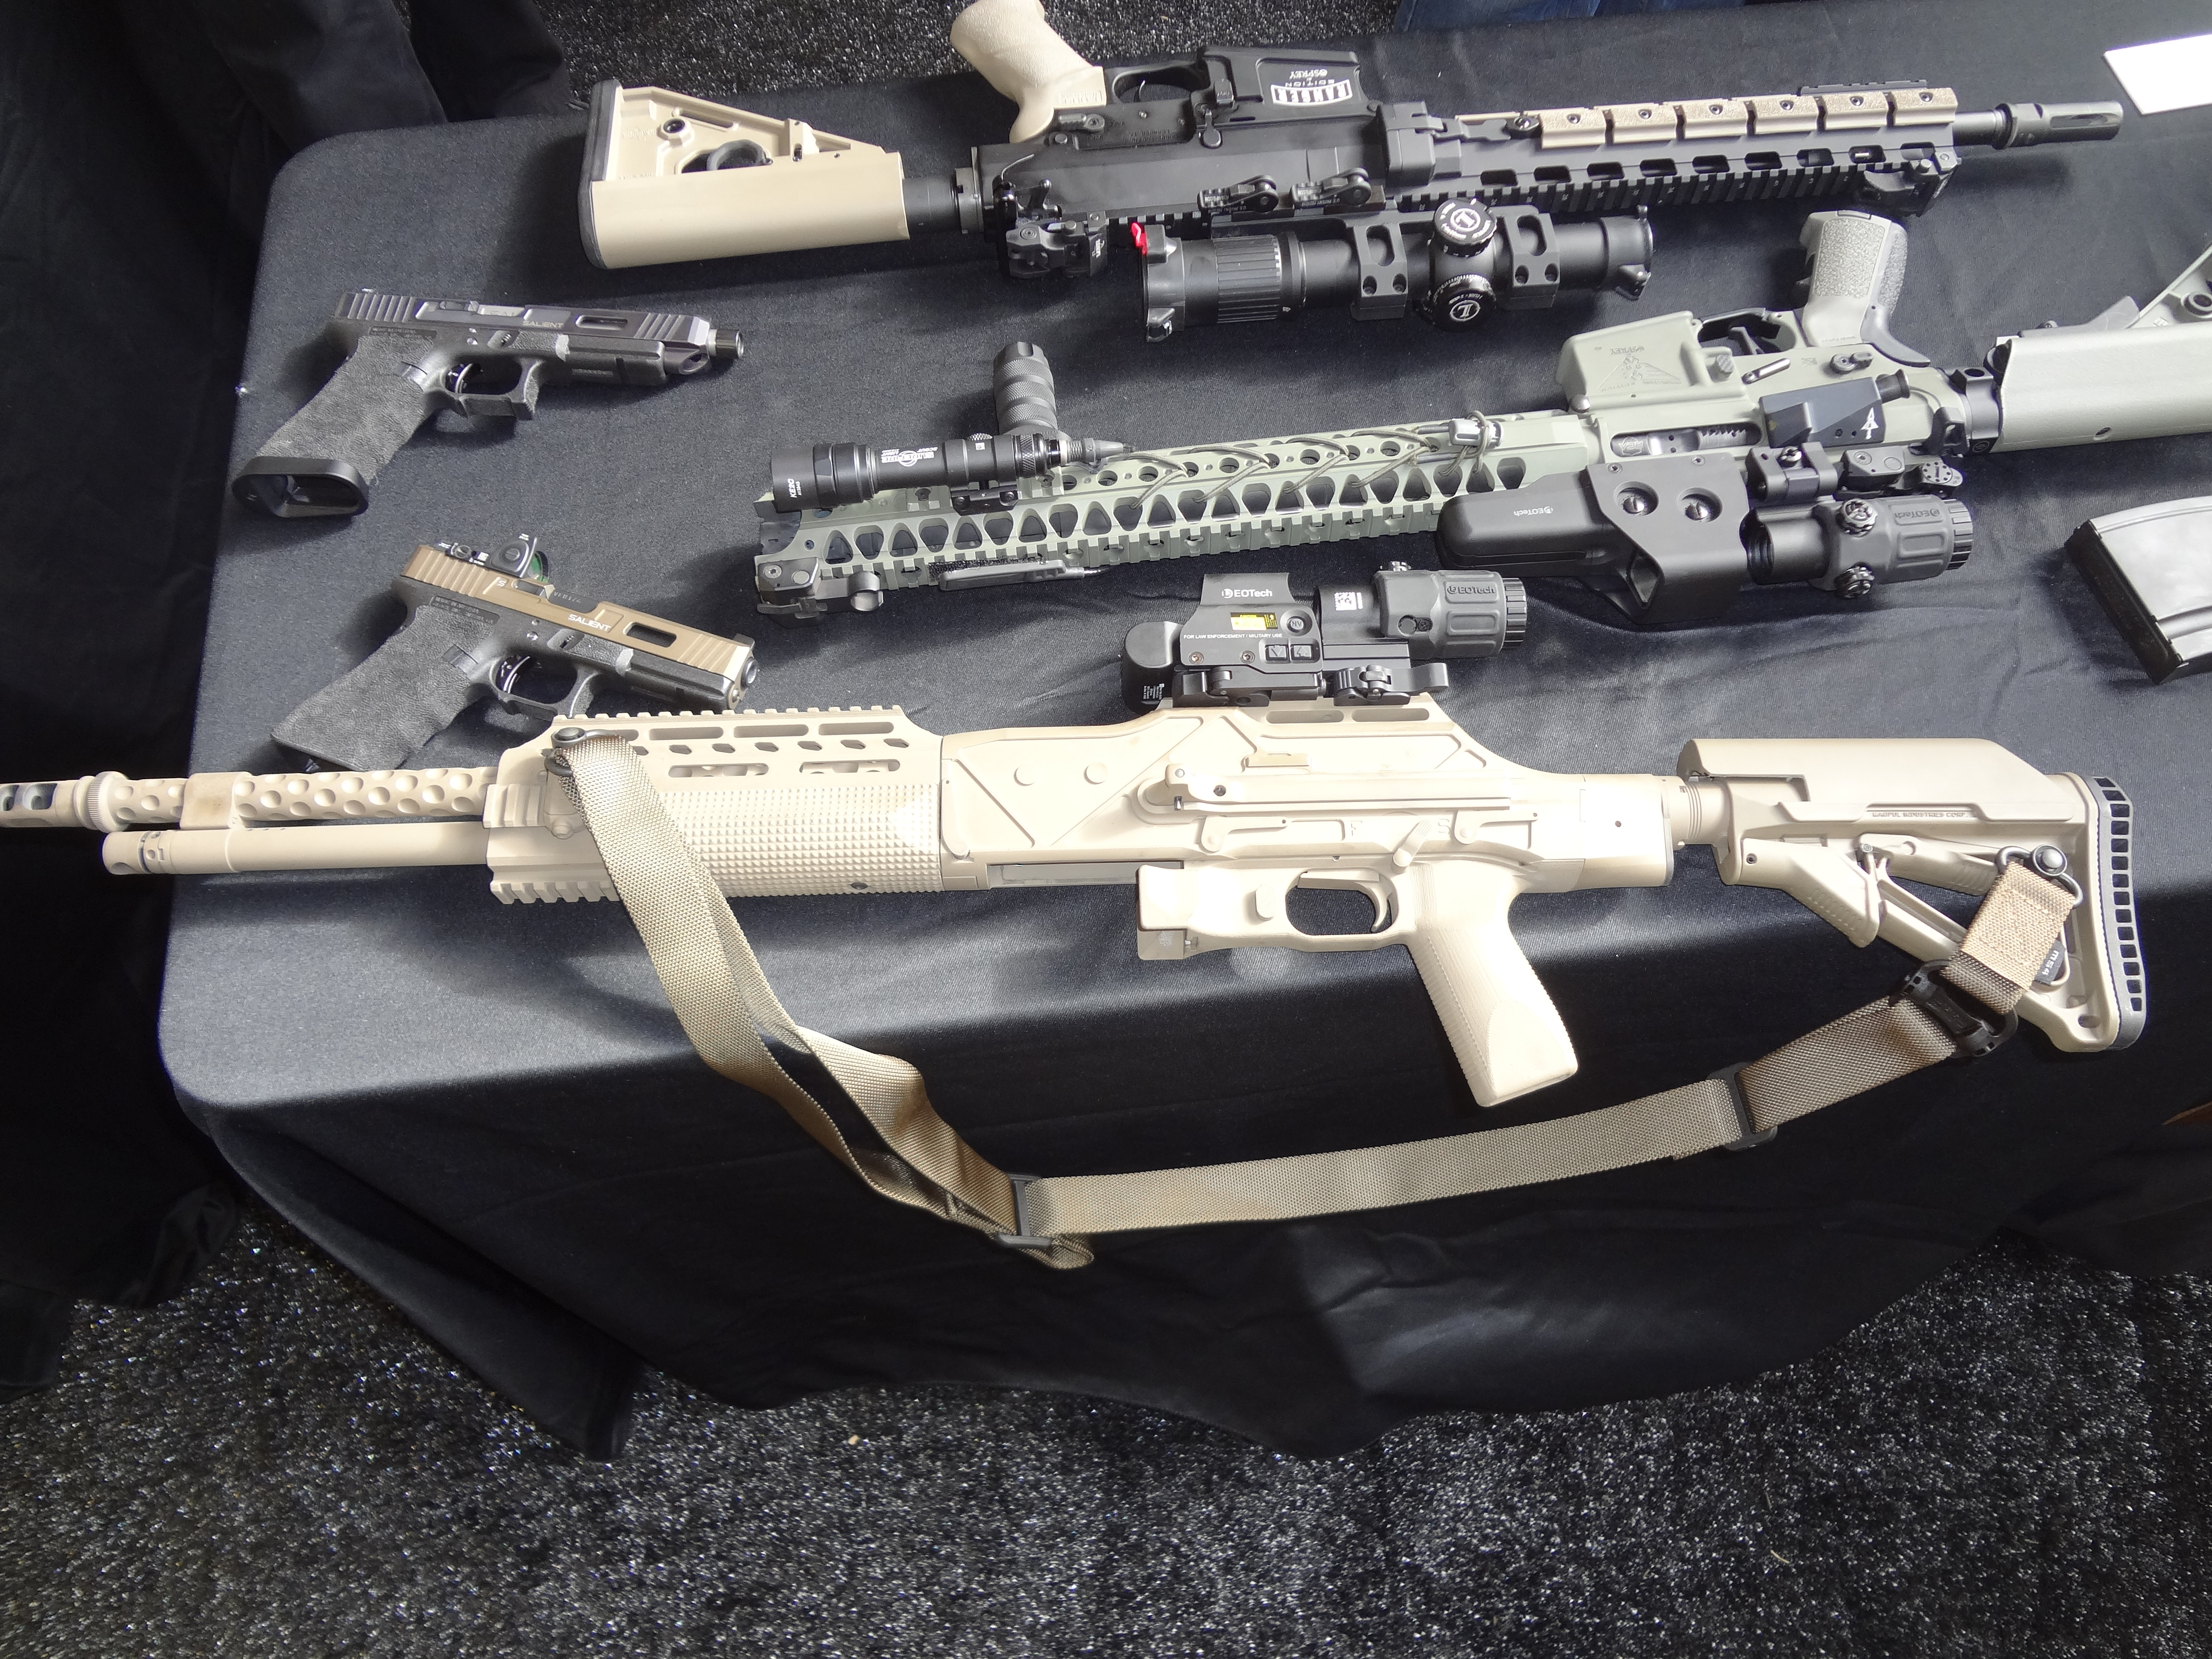 Ohio Ordnance HCAR Heavy Combat Assault Rifle SOPMOD BAR Browning Automatic Rifle .30 06 Springfield Caliber Steven Perry Osprey Global Solutions OGS SOFEX 2013 Jeff Gurwitch DefenseReview.com DR 1 Ohio Ordnance HCAR (Heavy Combat Assault Rifle): Quick, Cursory Analysis of a Modernized SOPMOD BAR (Browning Automatic Rifle) (Video!)